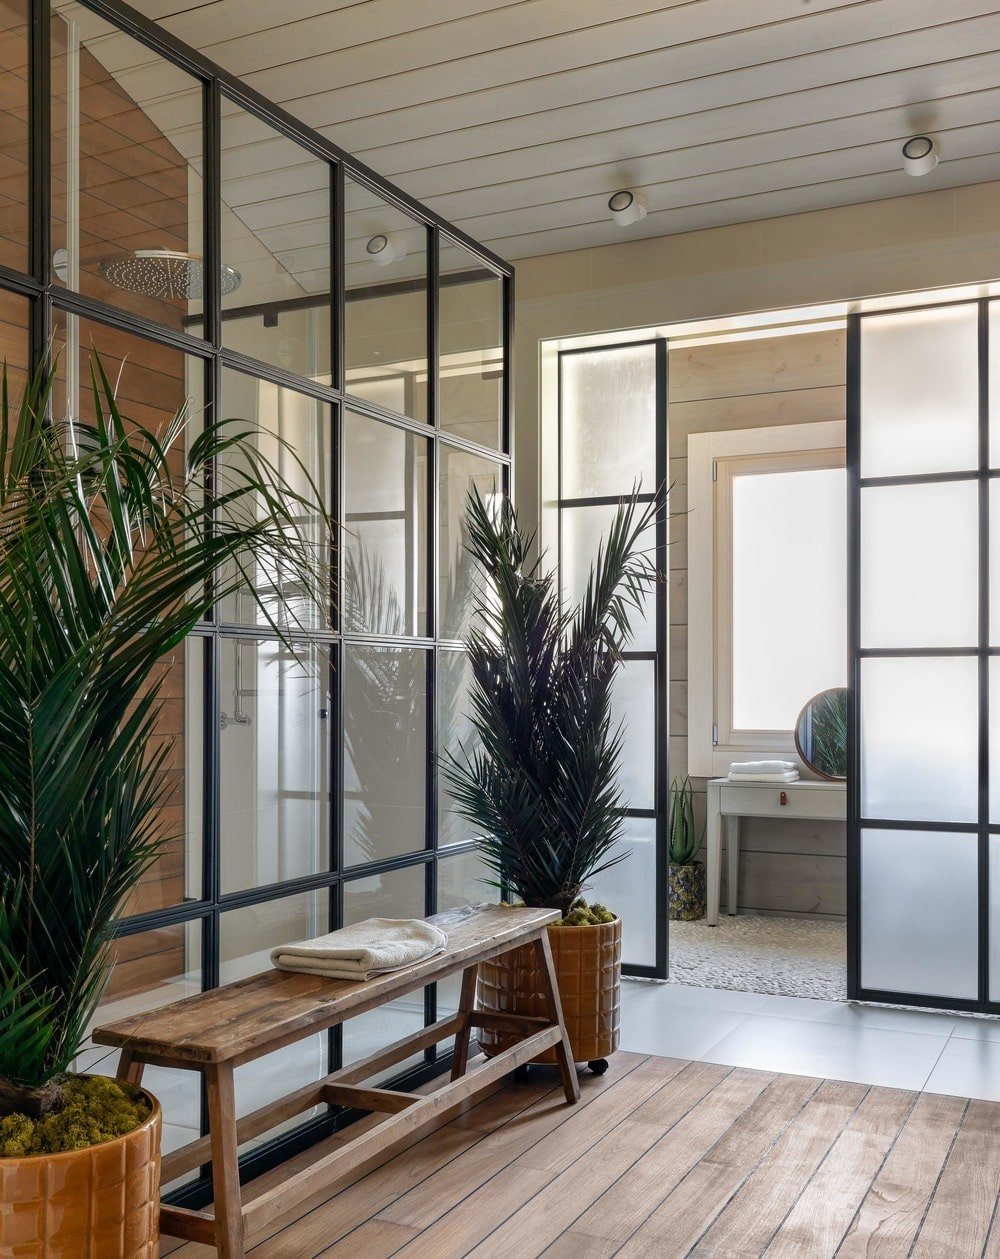 Across from the vanity area is a rustic wooden bench flanked by potted plants against the glass wall of the shower area. This has lovely black frames to stand out against the bright walls of the bathroom.